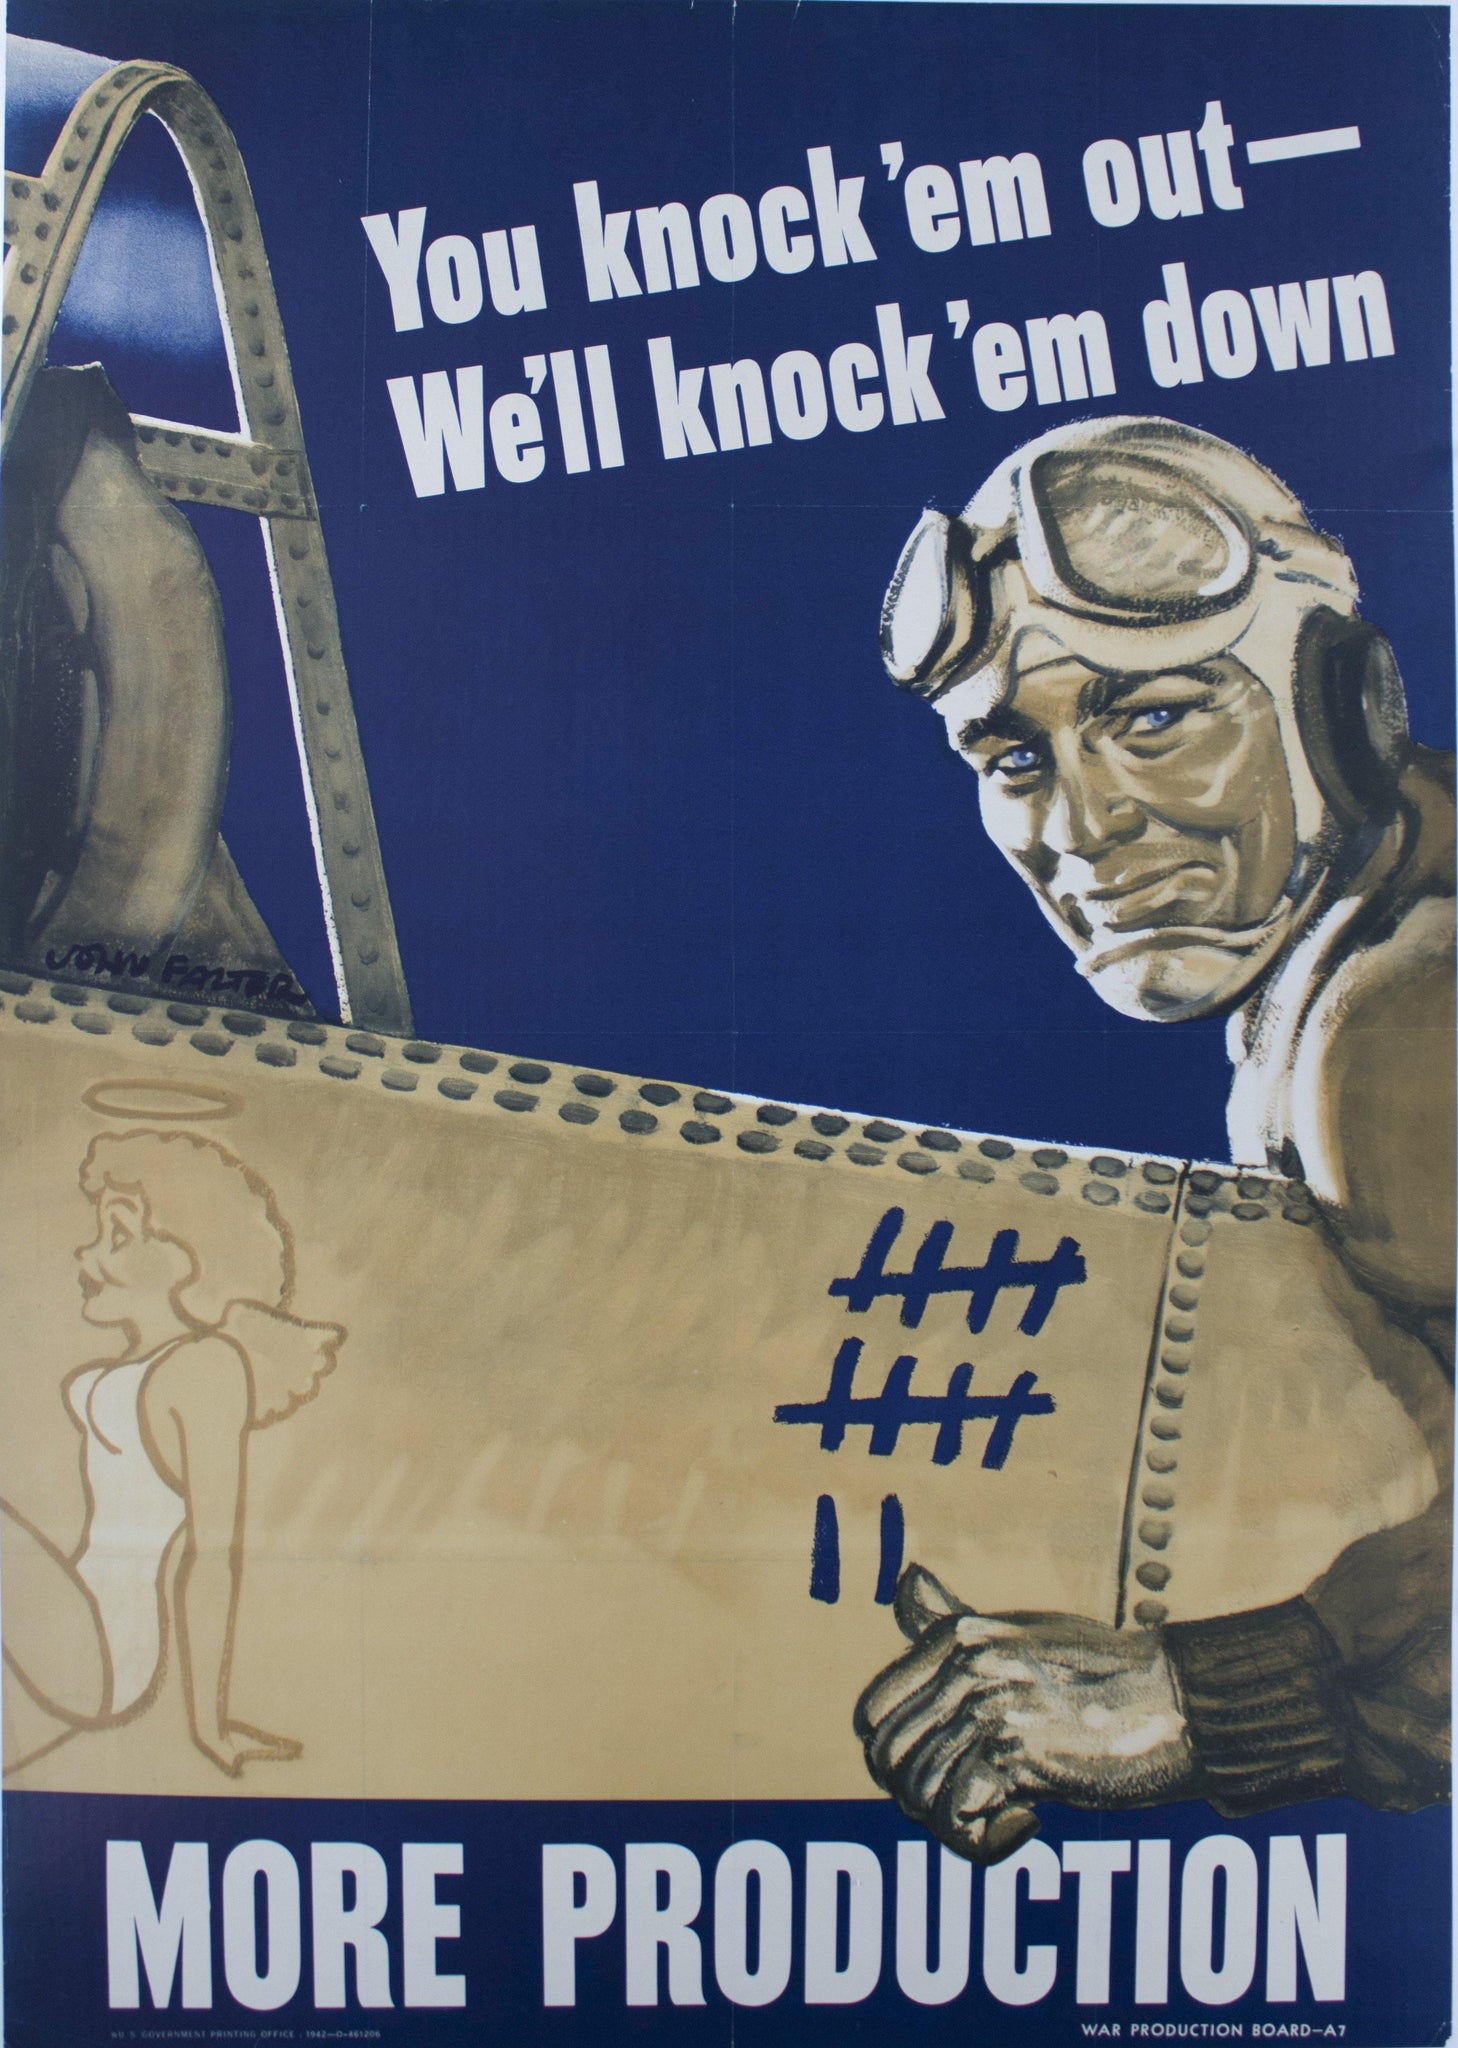 1942 You Knock 'em Out - We'll Knock 'em Down More Production